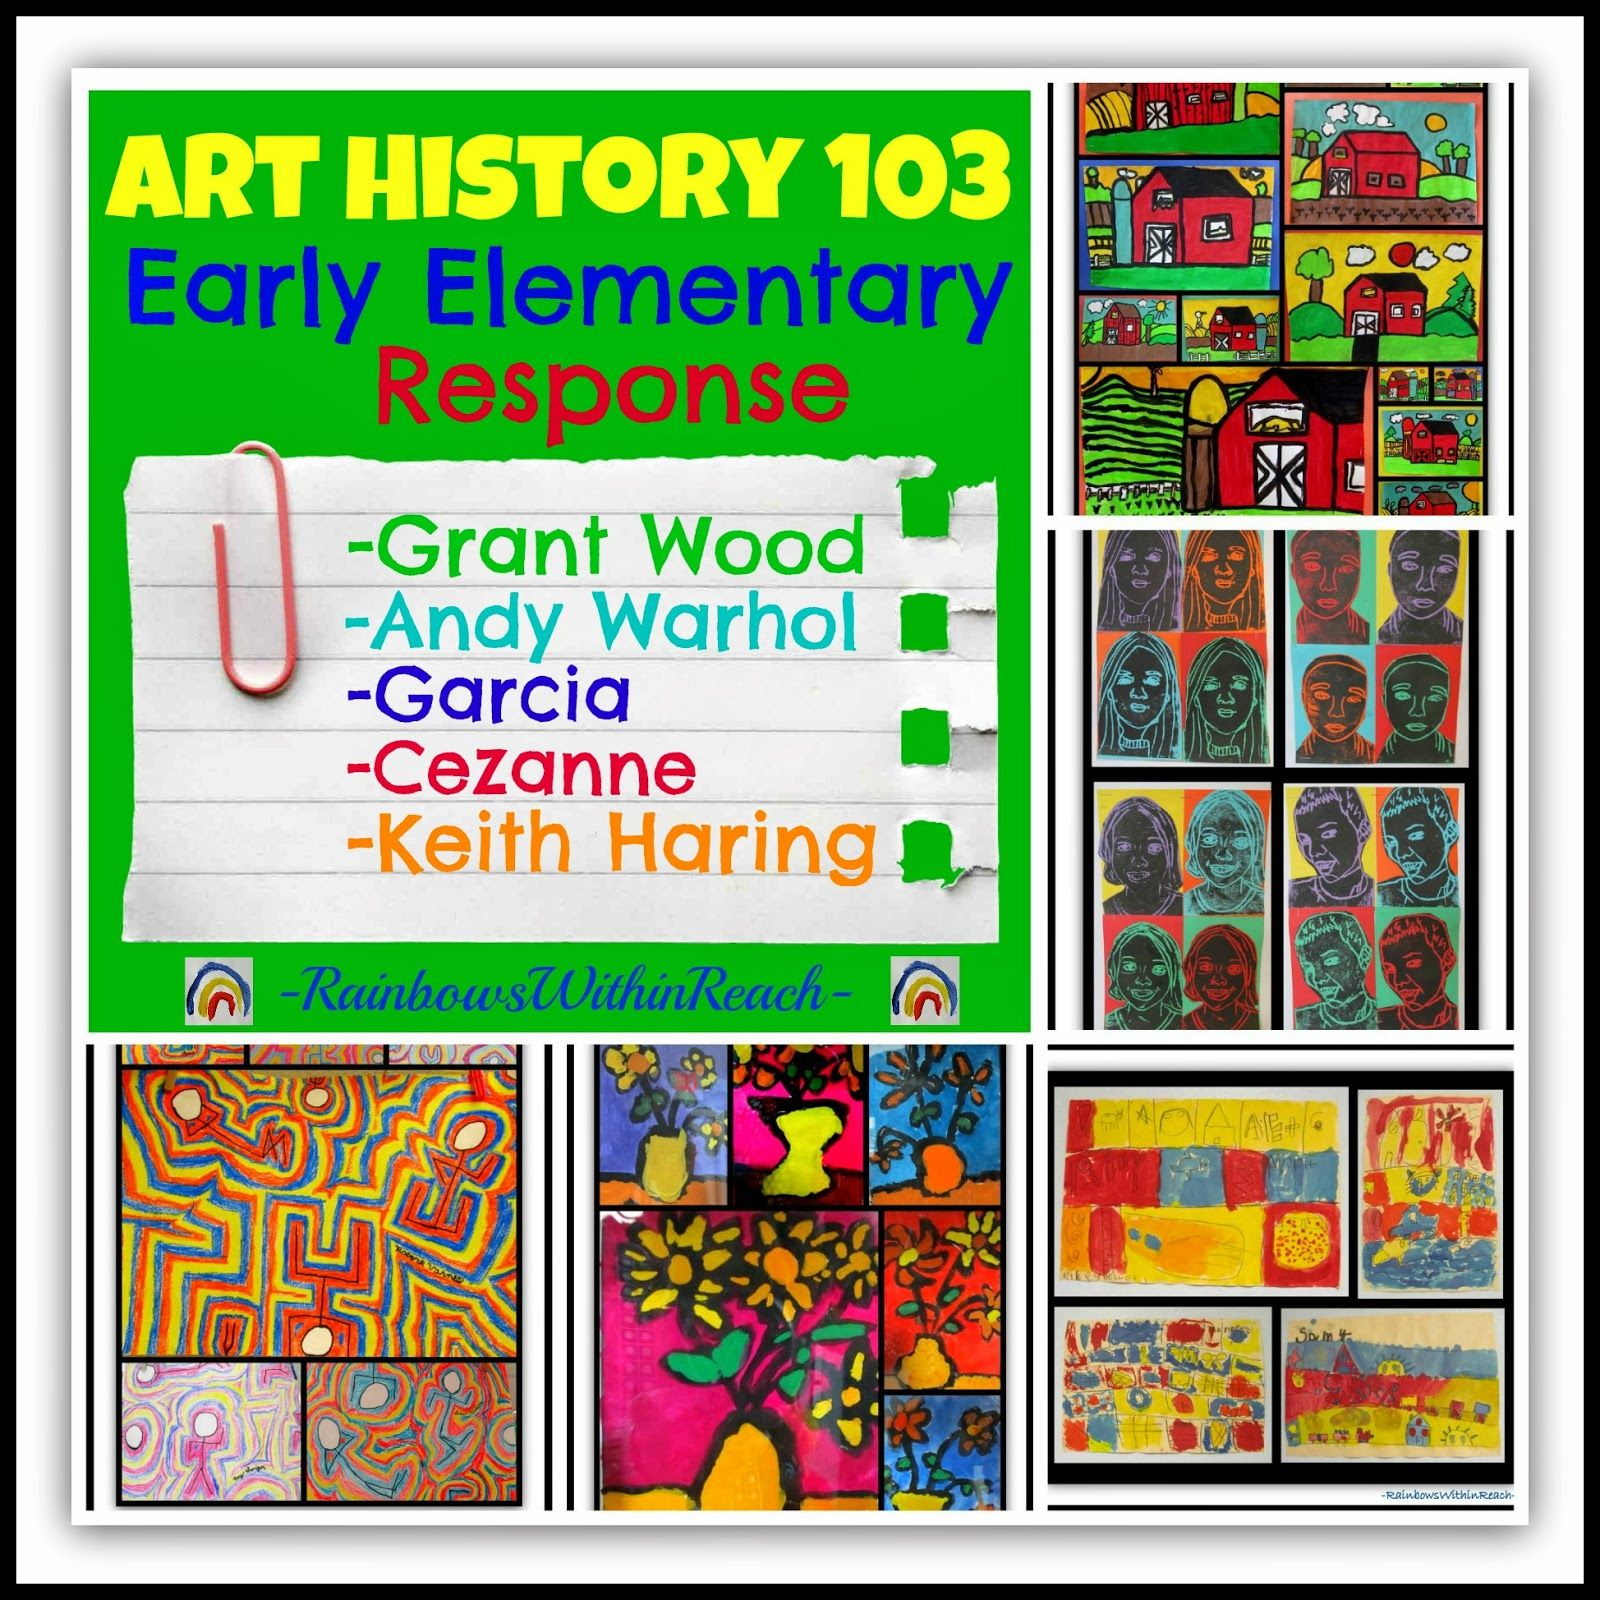 Art History 103 Early Elementary Art Response